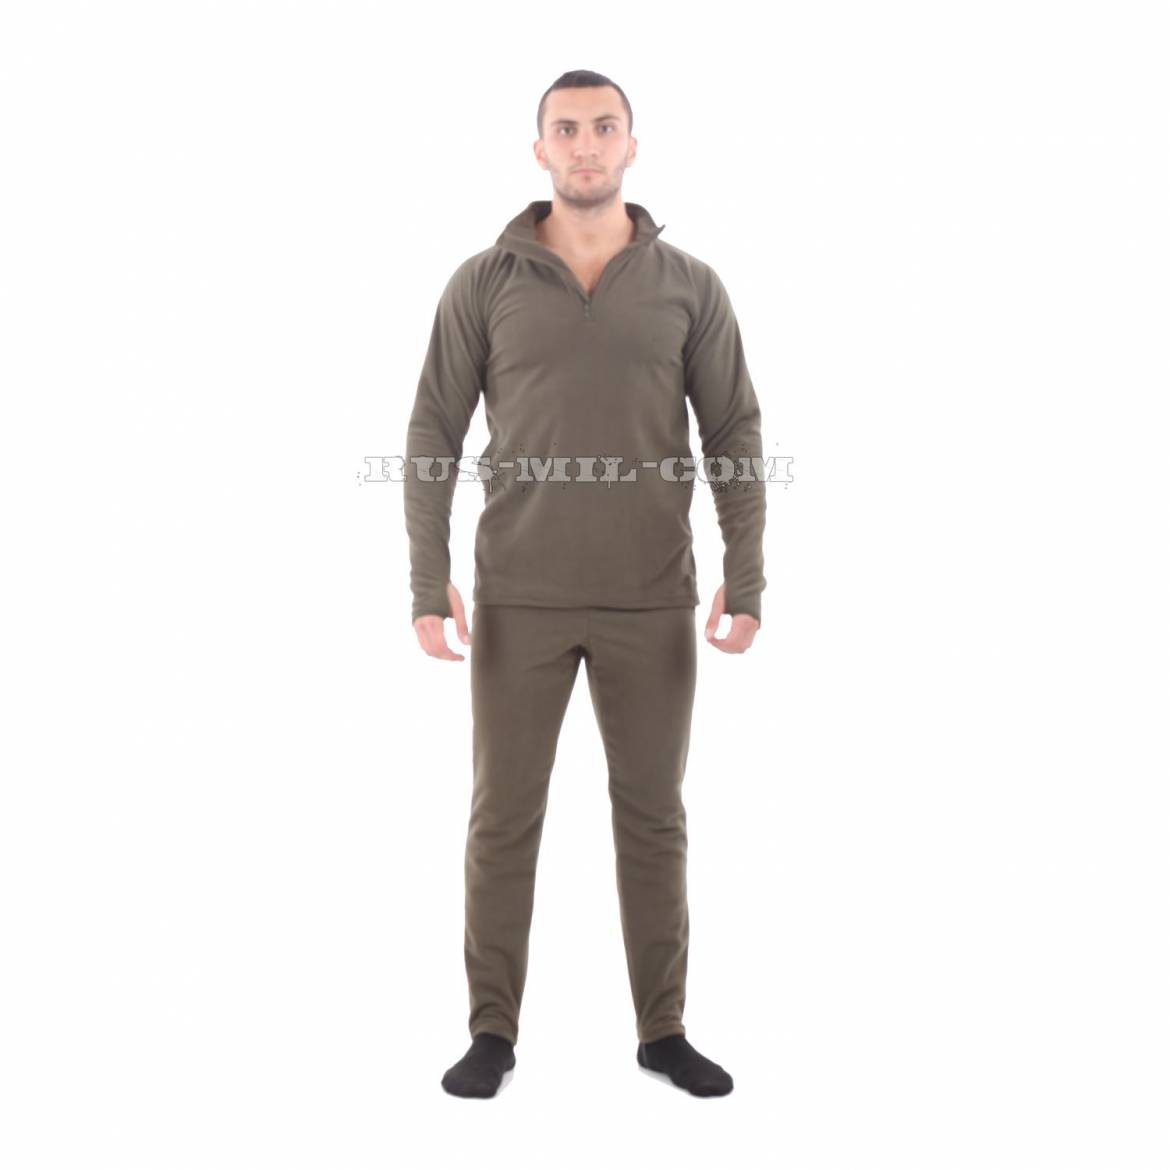 buy-Second-Layer-Thermal-Underwear-olive.jpg